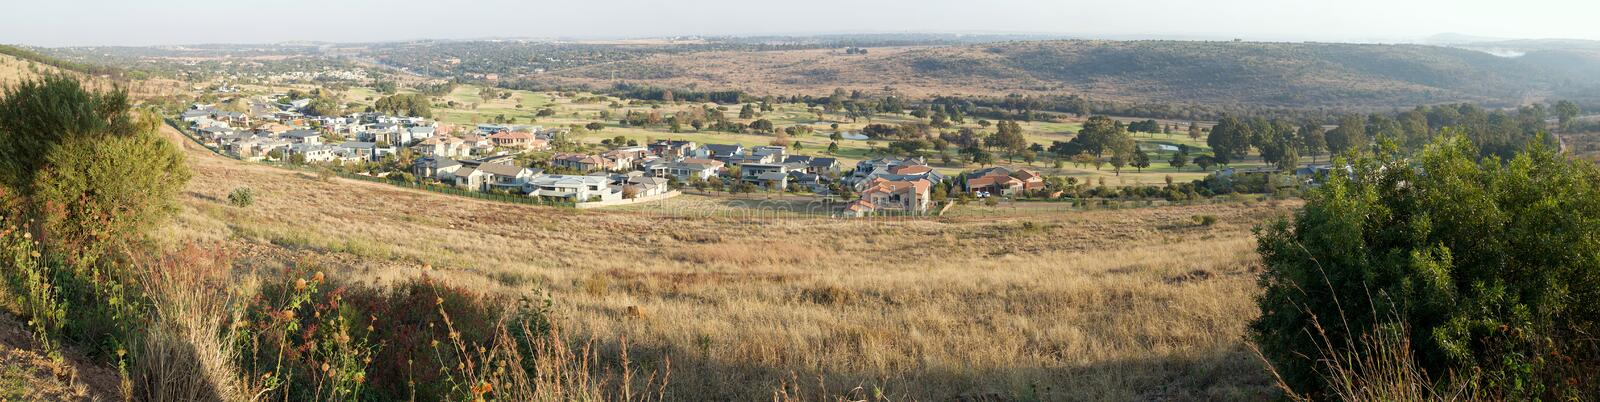 Waterkloof and its golf course, Pretoria, South Africa. A panorama image showing the affluent suburb of Waterkloof in Pretoria, South Africa. It also has a golf royalty free stock images